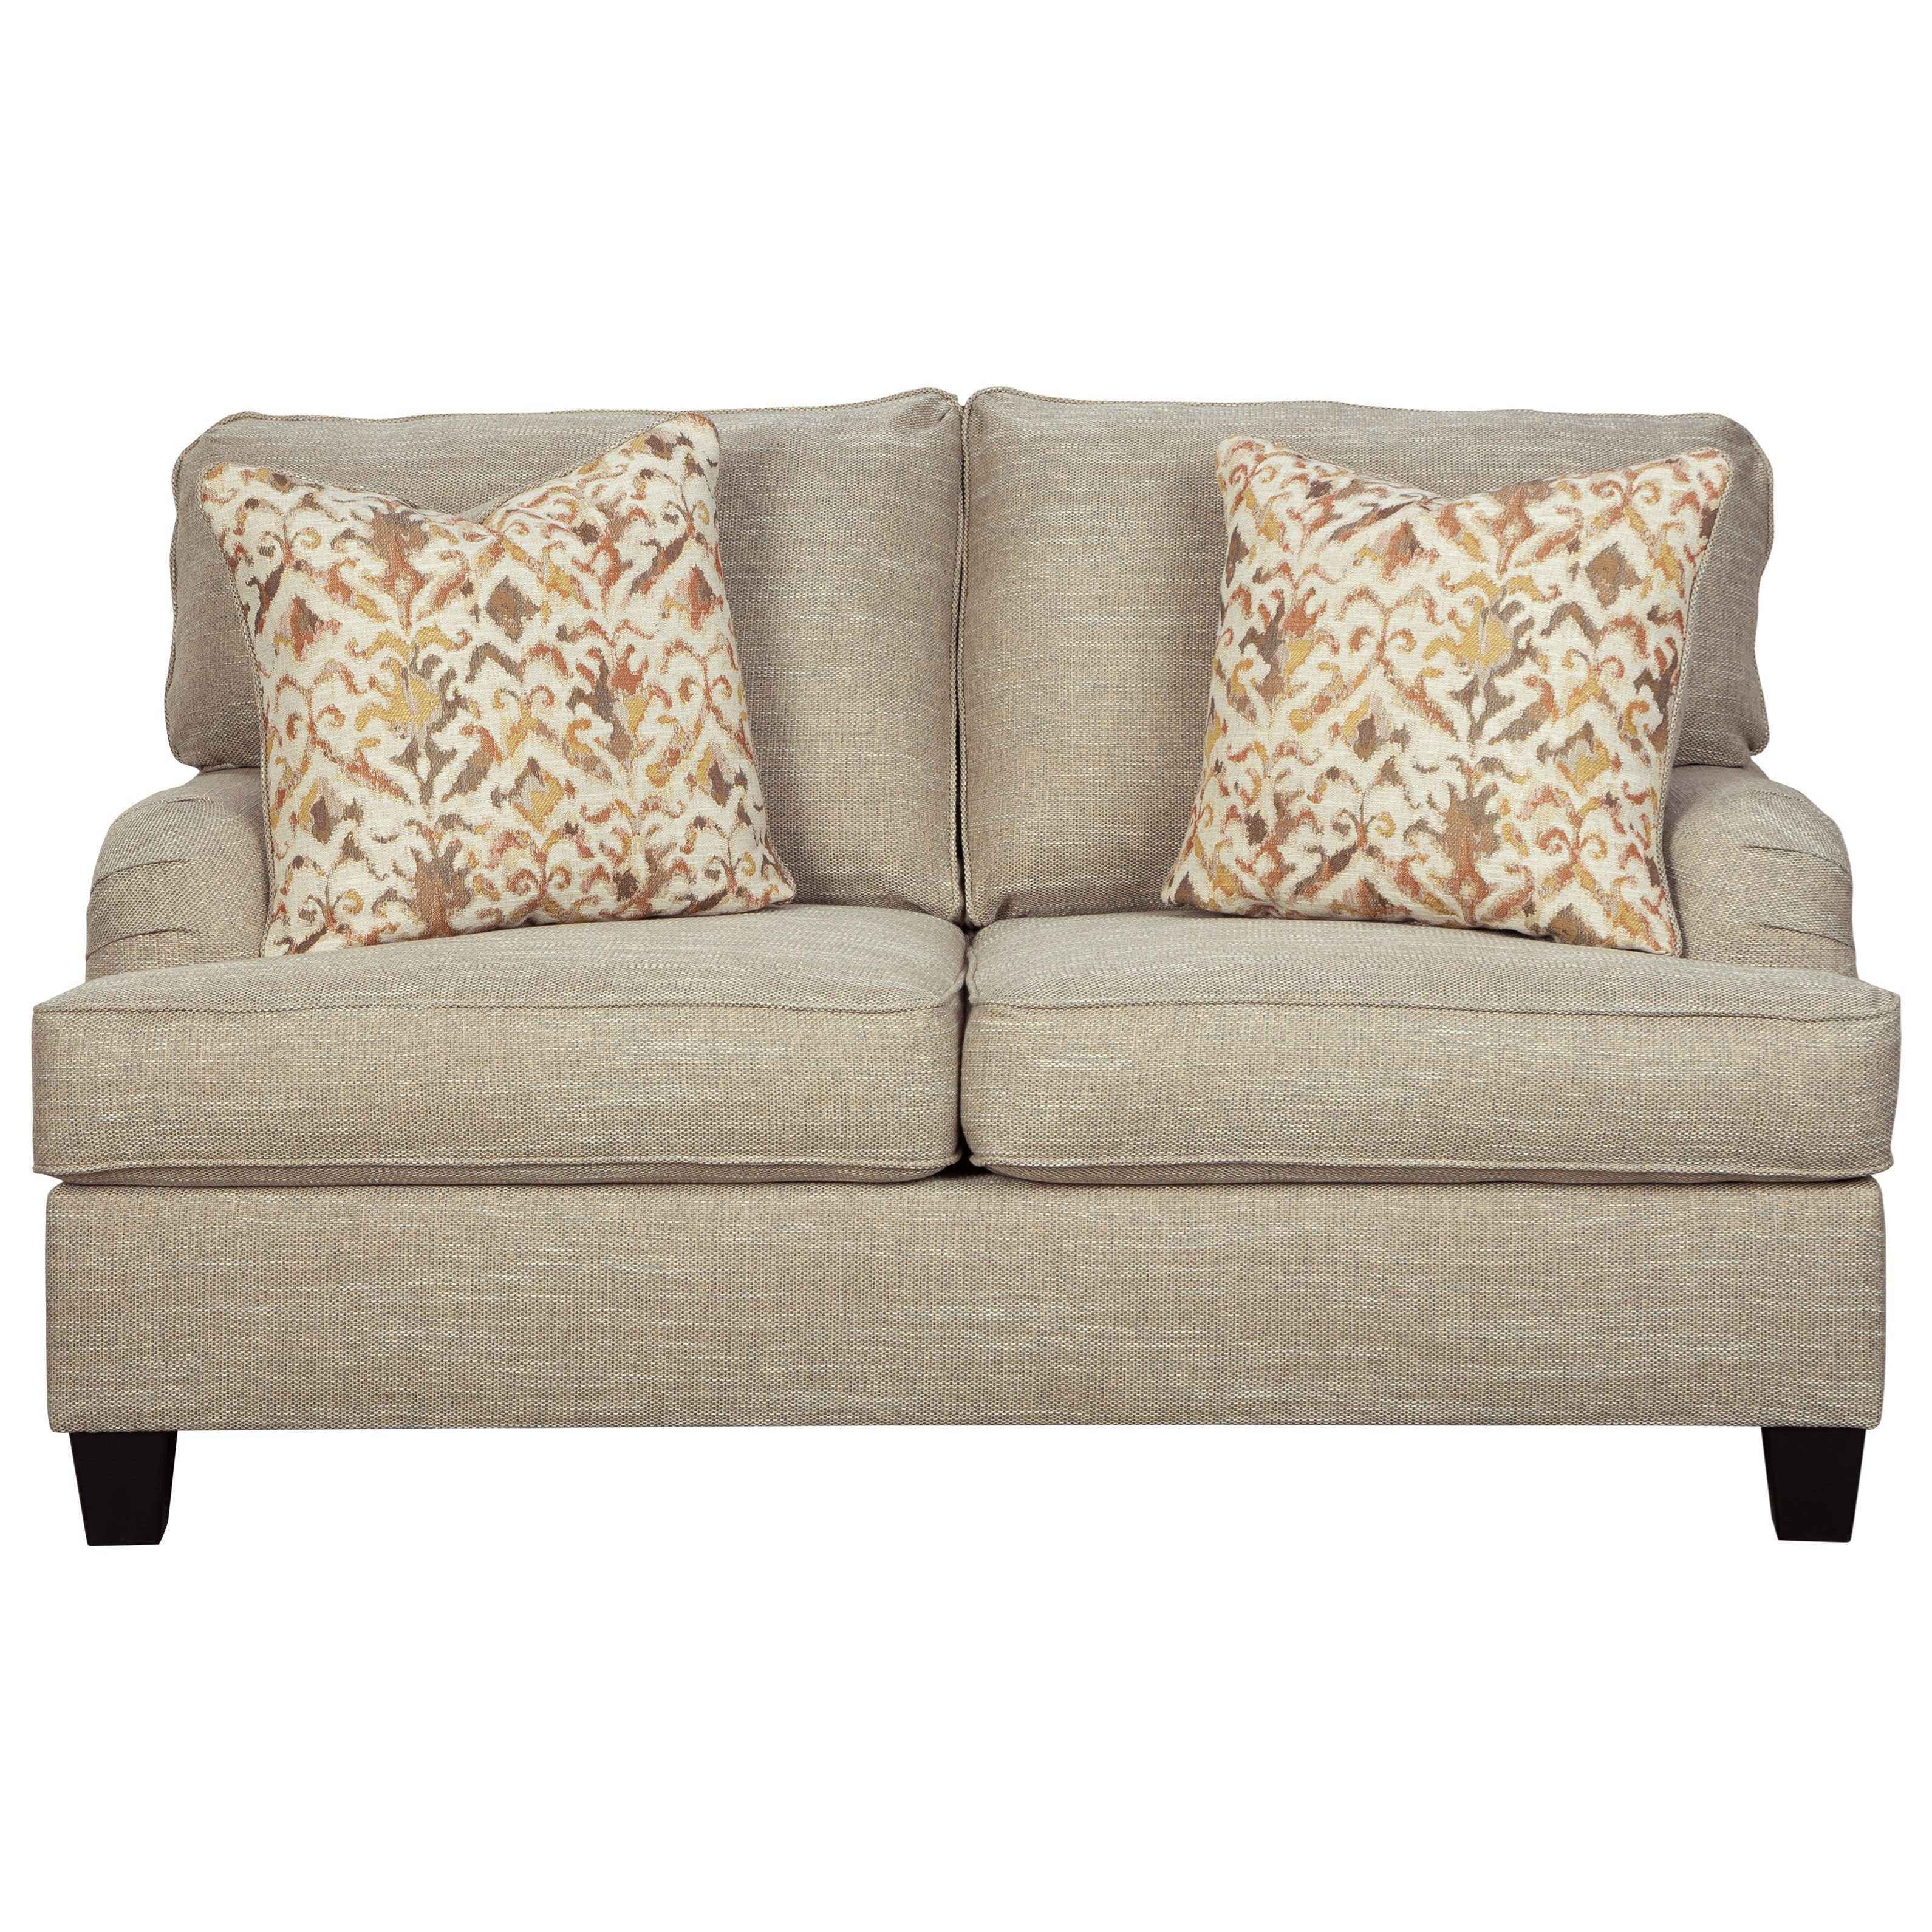 Almanza Loveseat by Signature Design by Ashley at Catalog Outlet